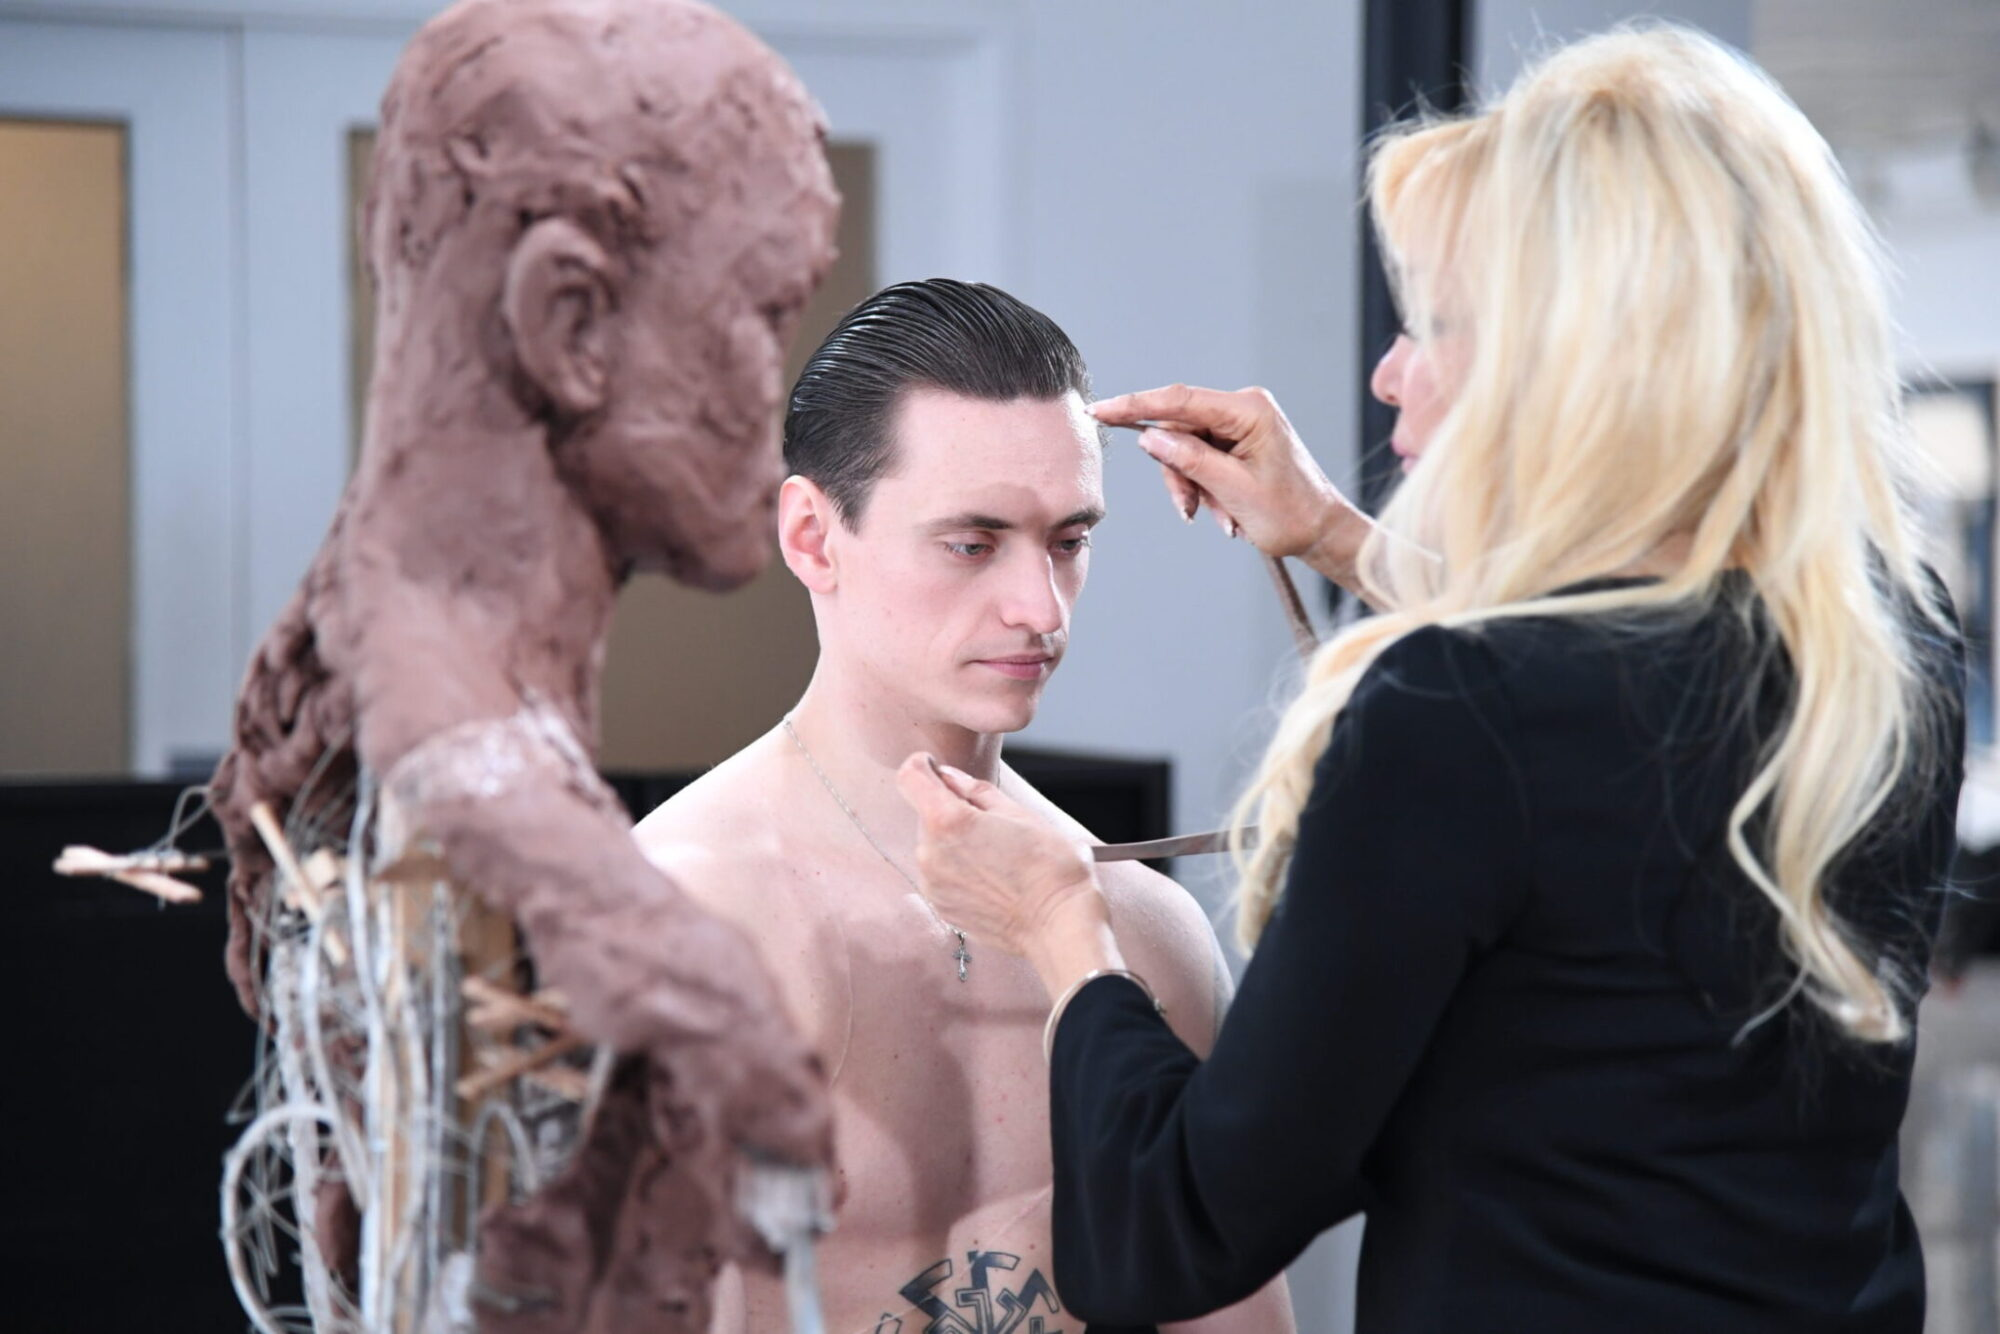 Frances sculpting Sergei